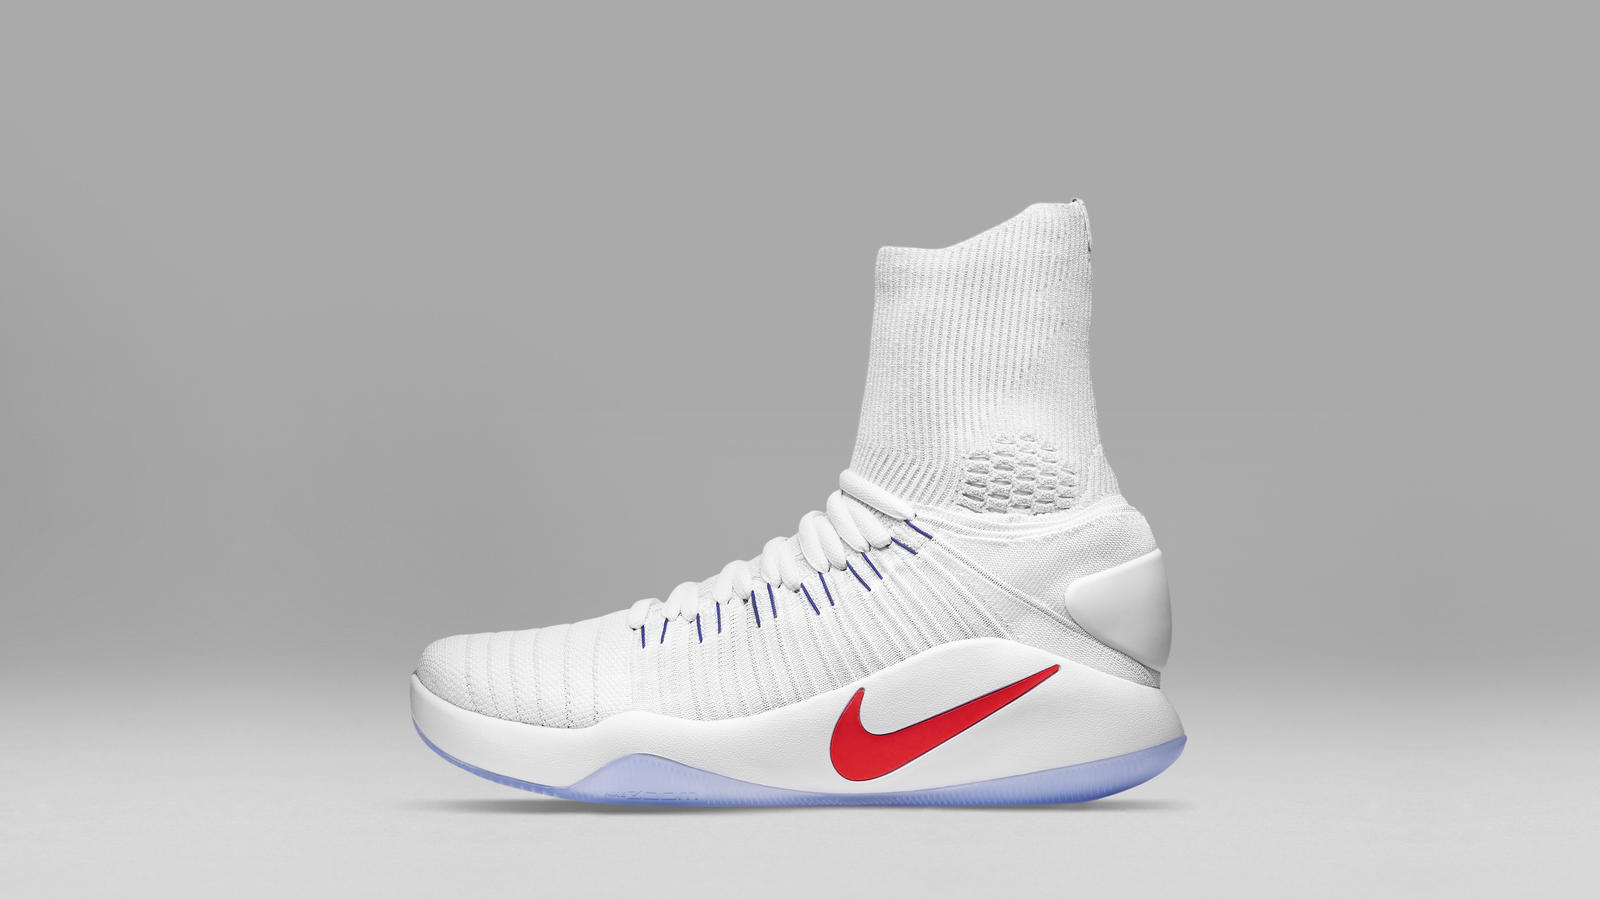 ba4aef94a944 Nike Hyperdunk 2016 Exemplifies Performance Innovation - Nike News